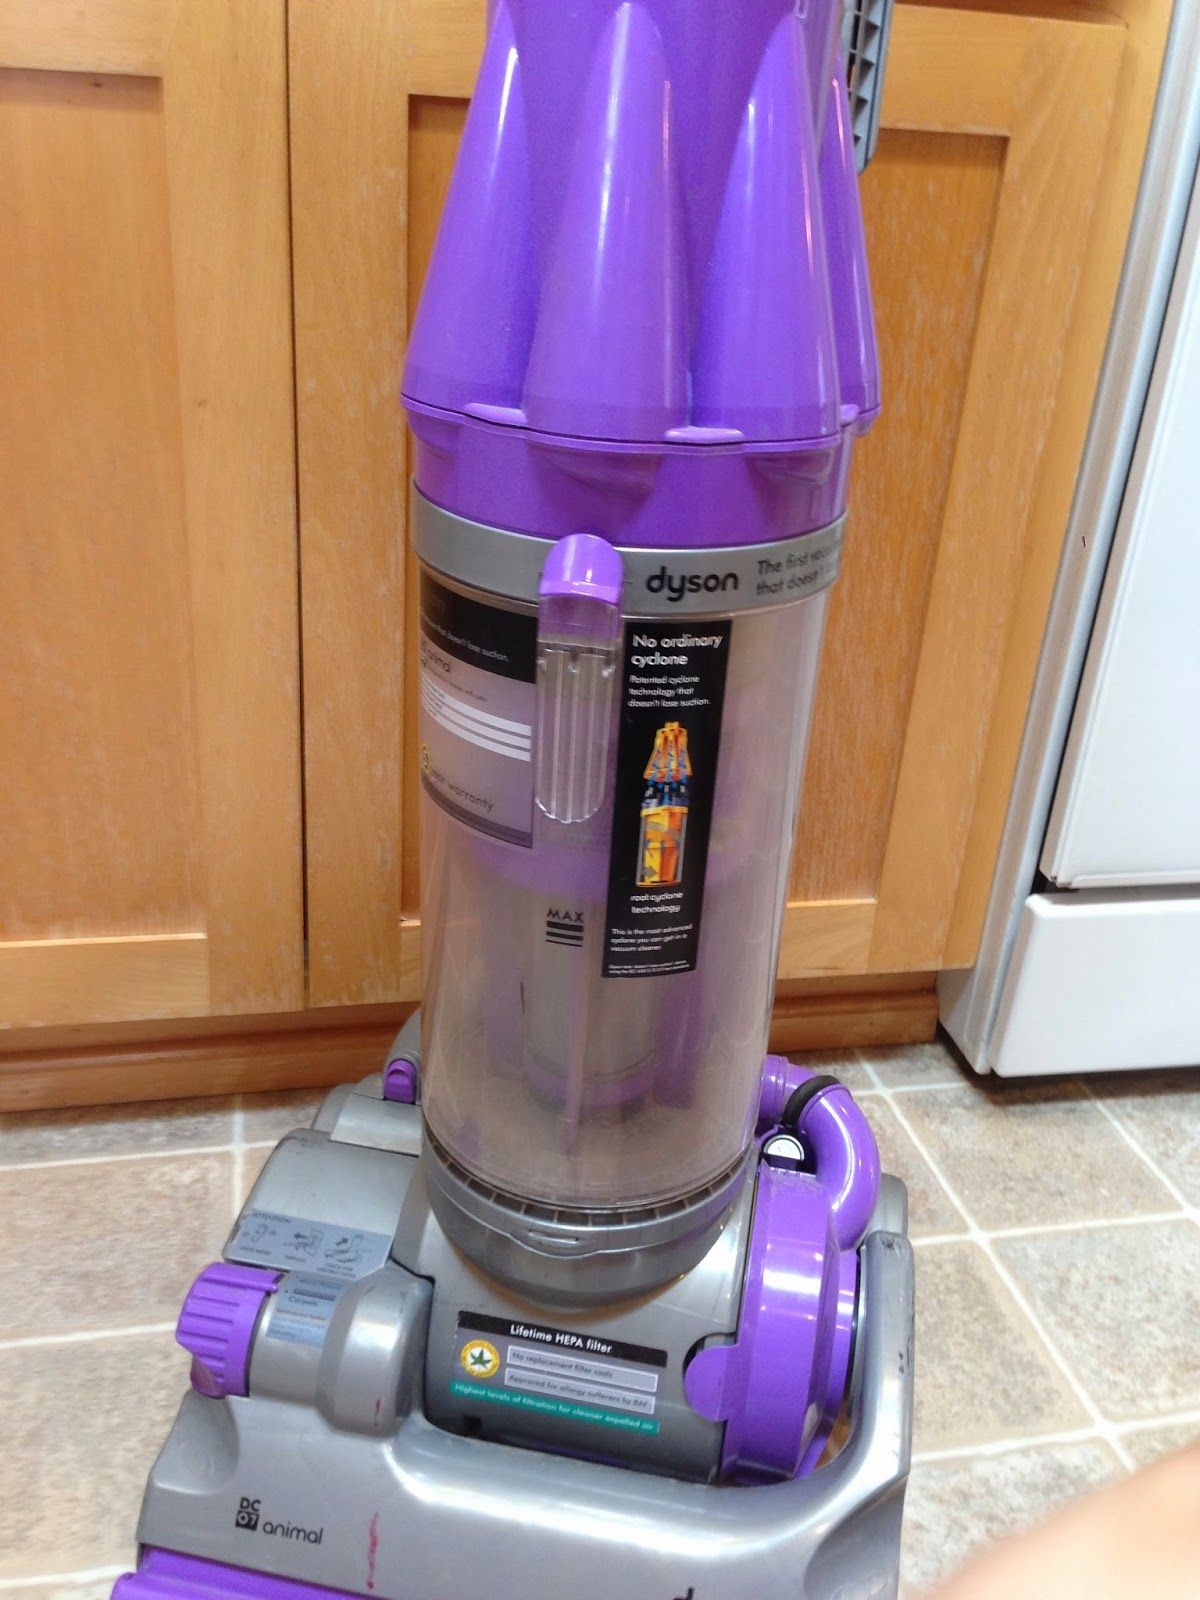 11++ How to clean dyson animal vacuum ideas in 2021